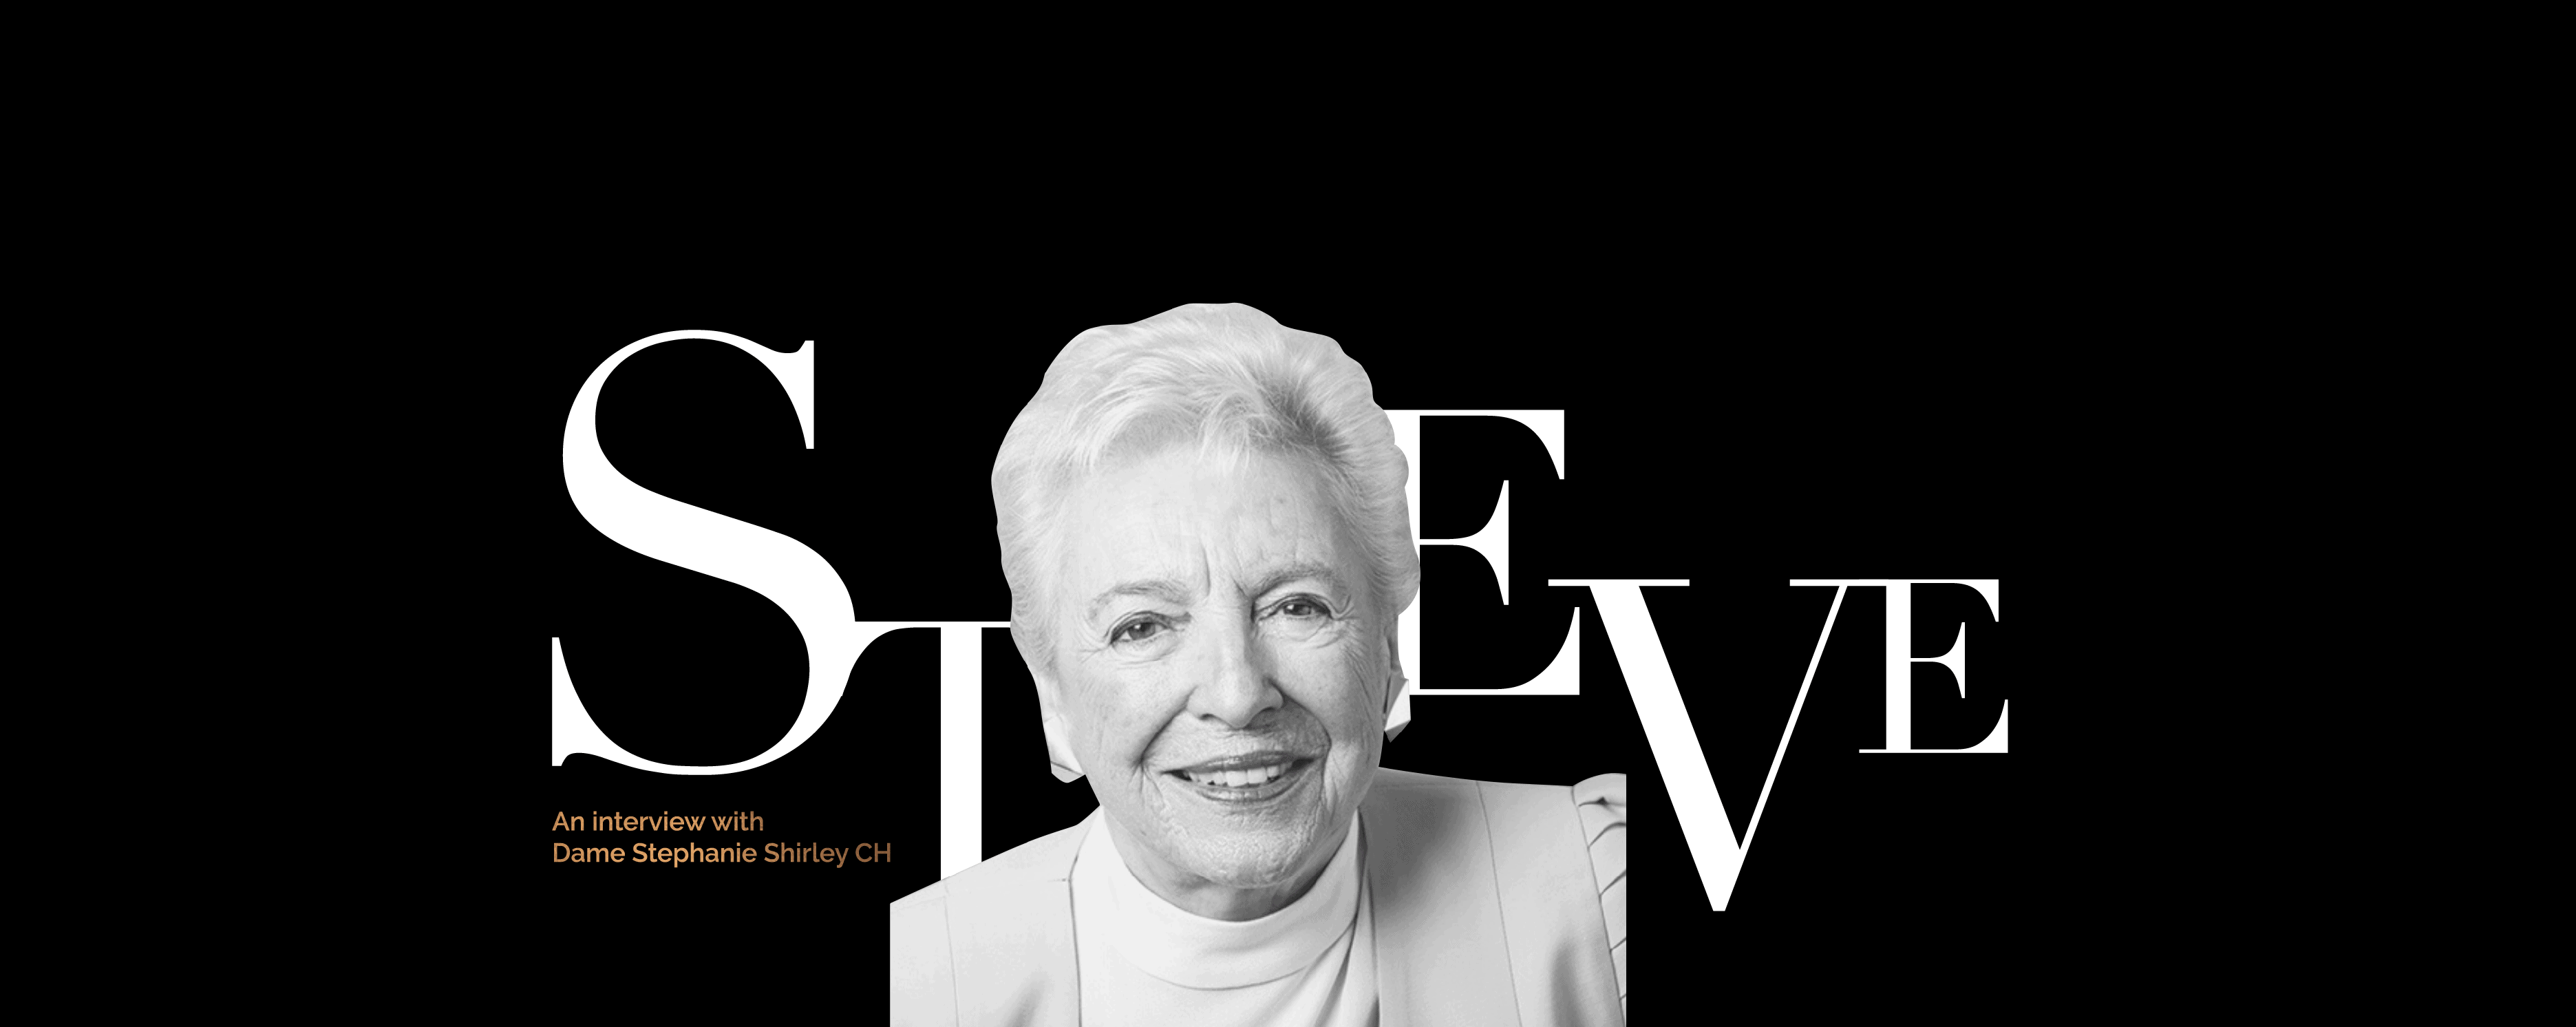 Smiling Dame Stephanie Shirley portrait against a backdrop of the name Steve